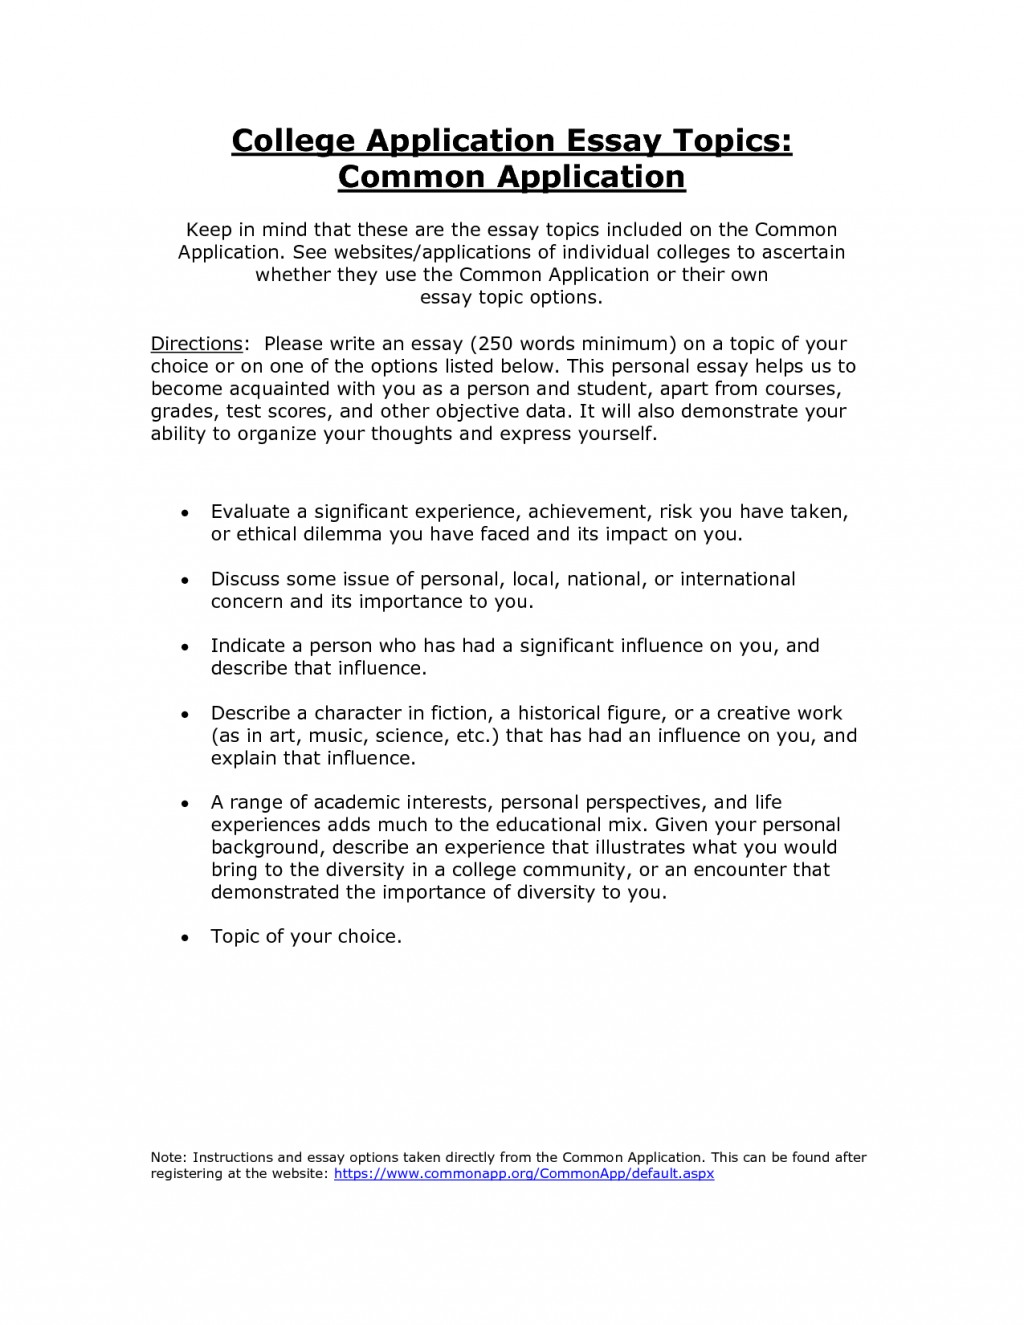 006 Vzmthii0b2 Common App Examples Best Example Essays Application Essay Harvard Prompts 2014-15 Large